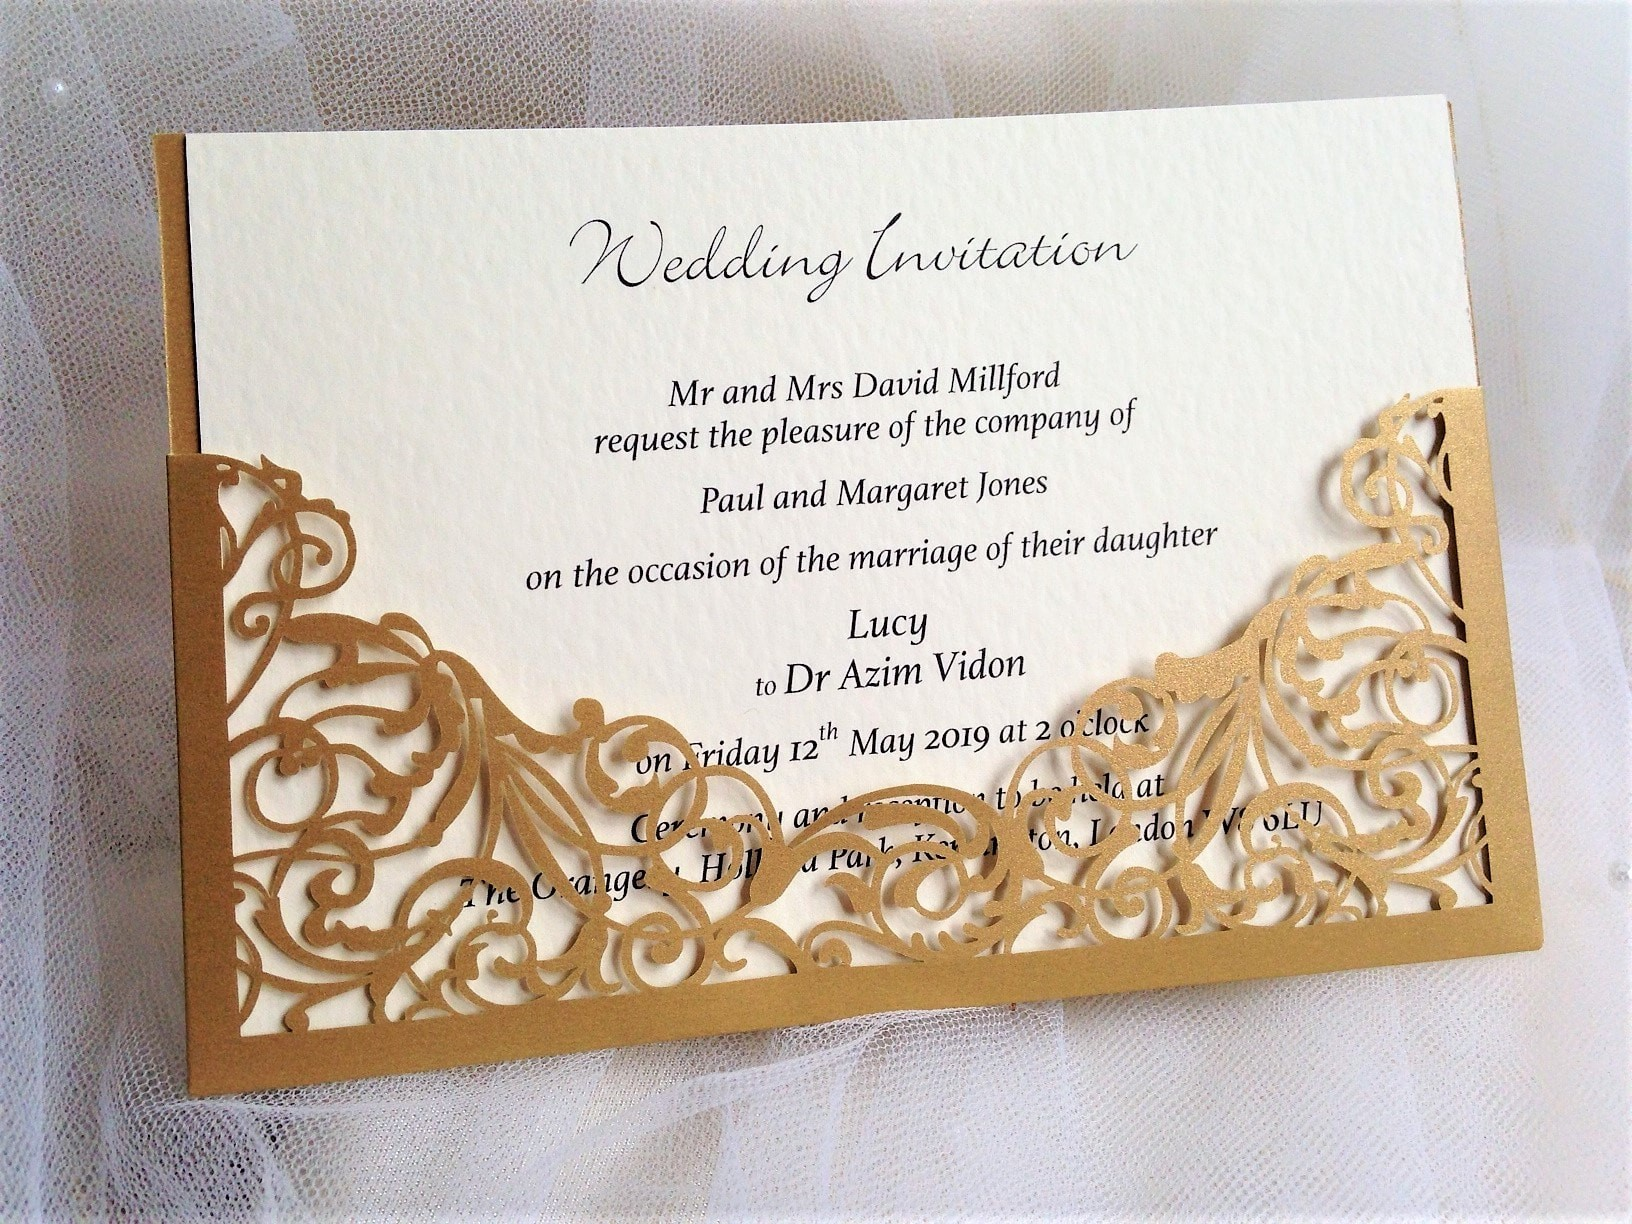 Wedding invitations wedding stationery affordable prices stopboris Choice Image